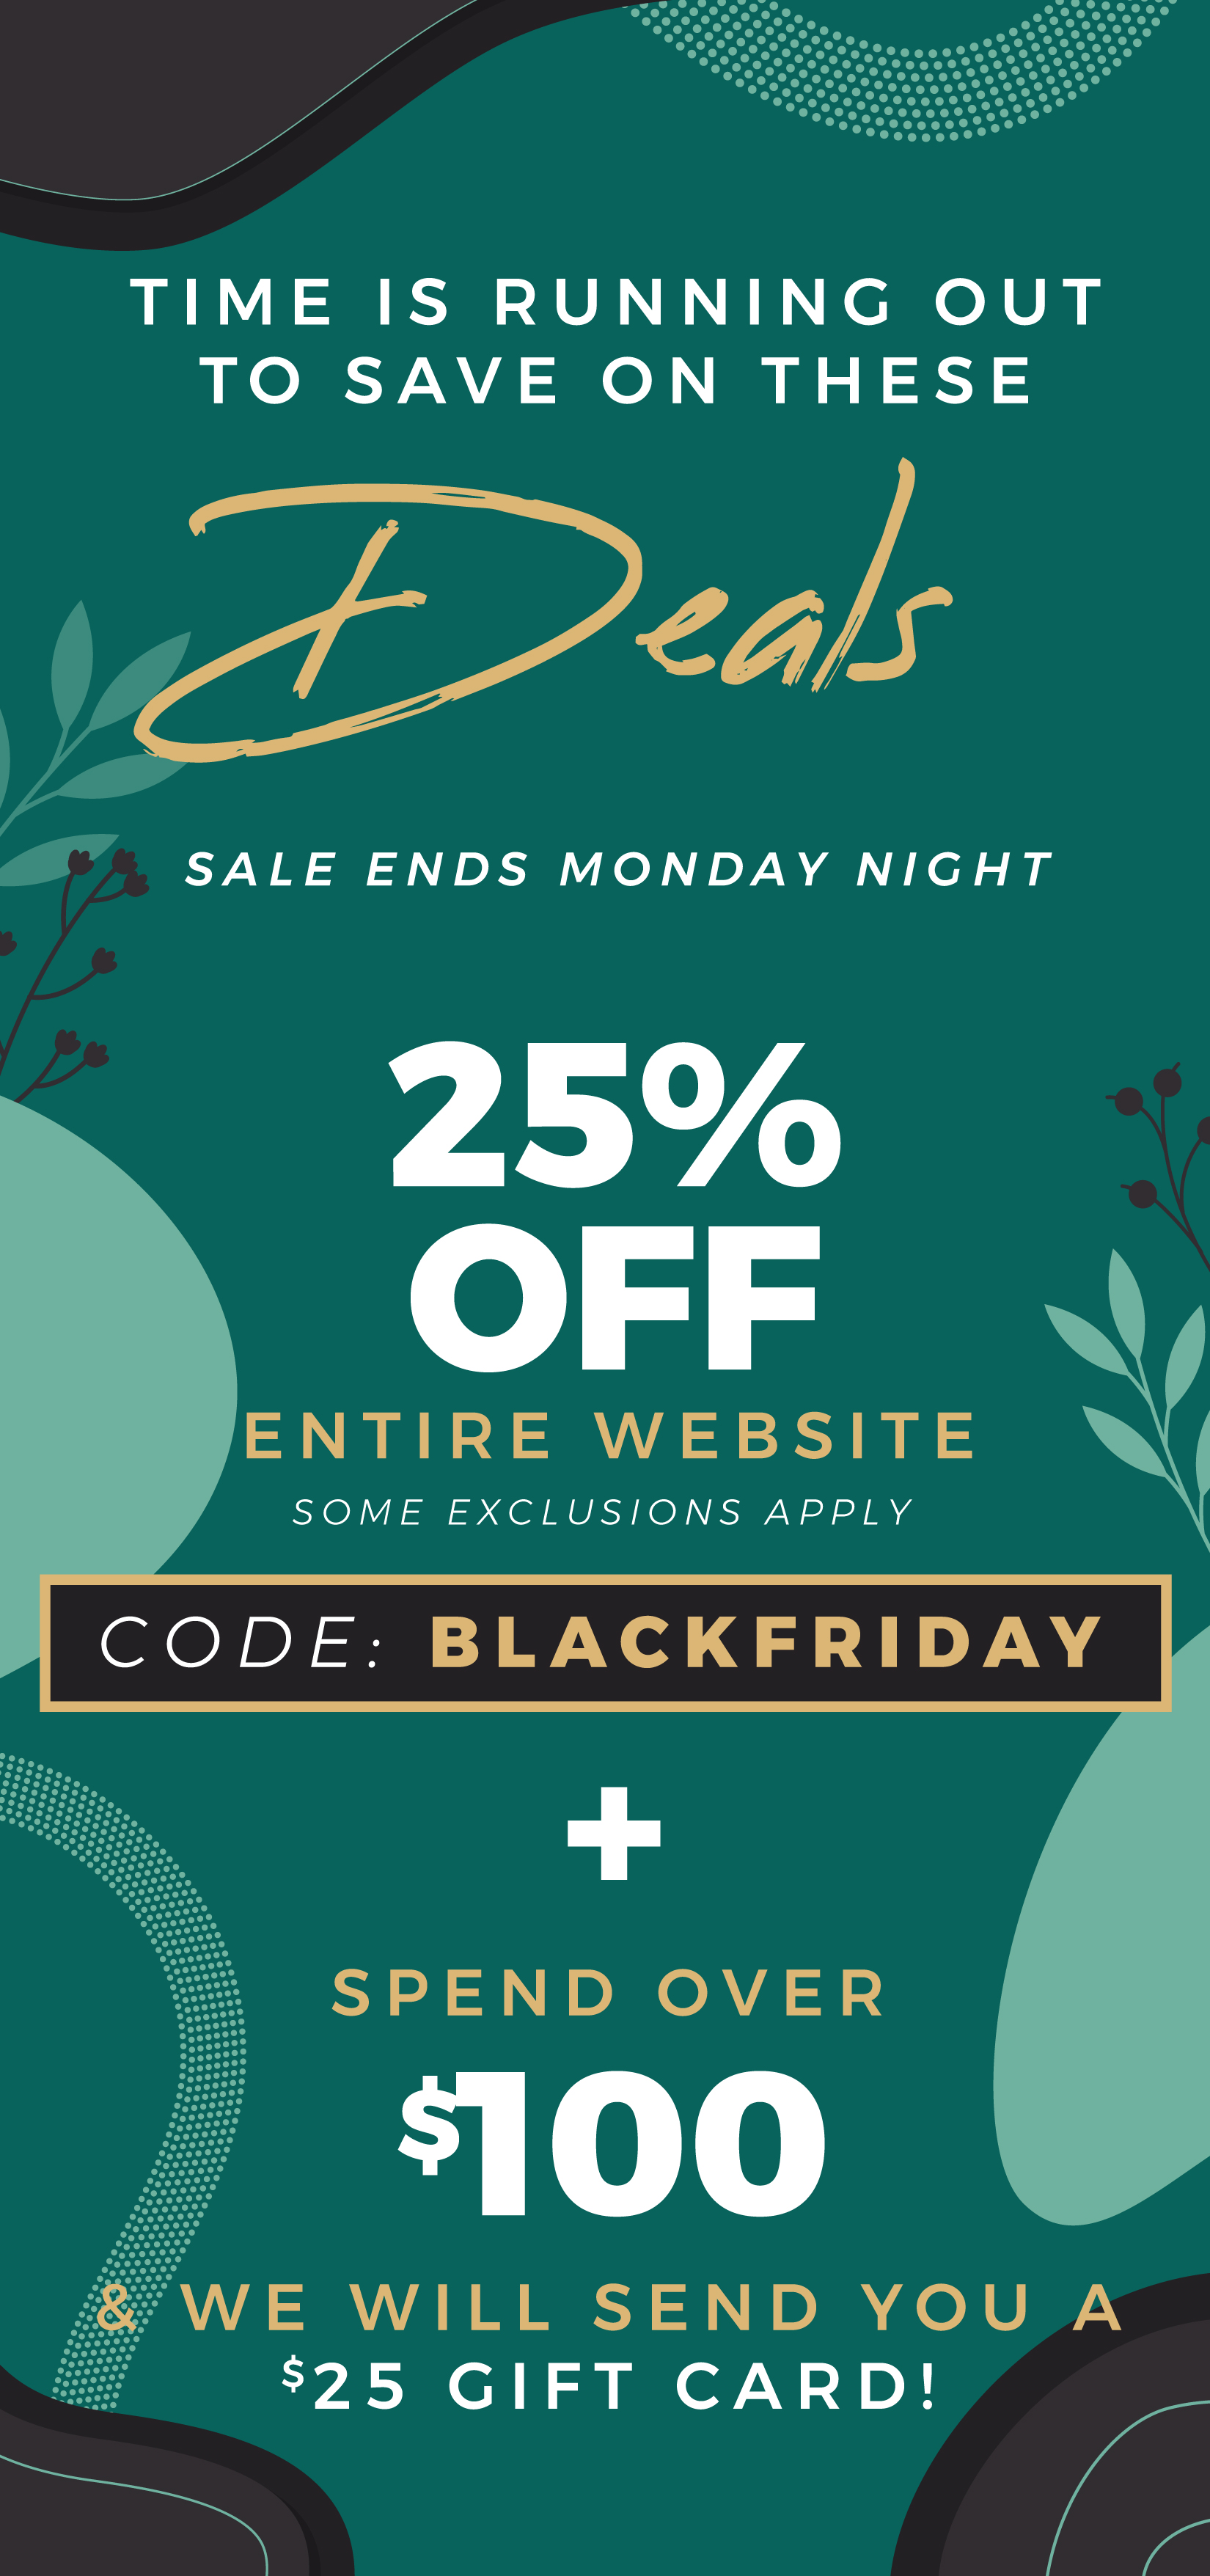 Time is running out to save up to 25% off the entire website + a $25 gift card if you spend over $100!